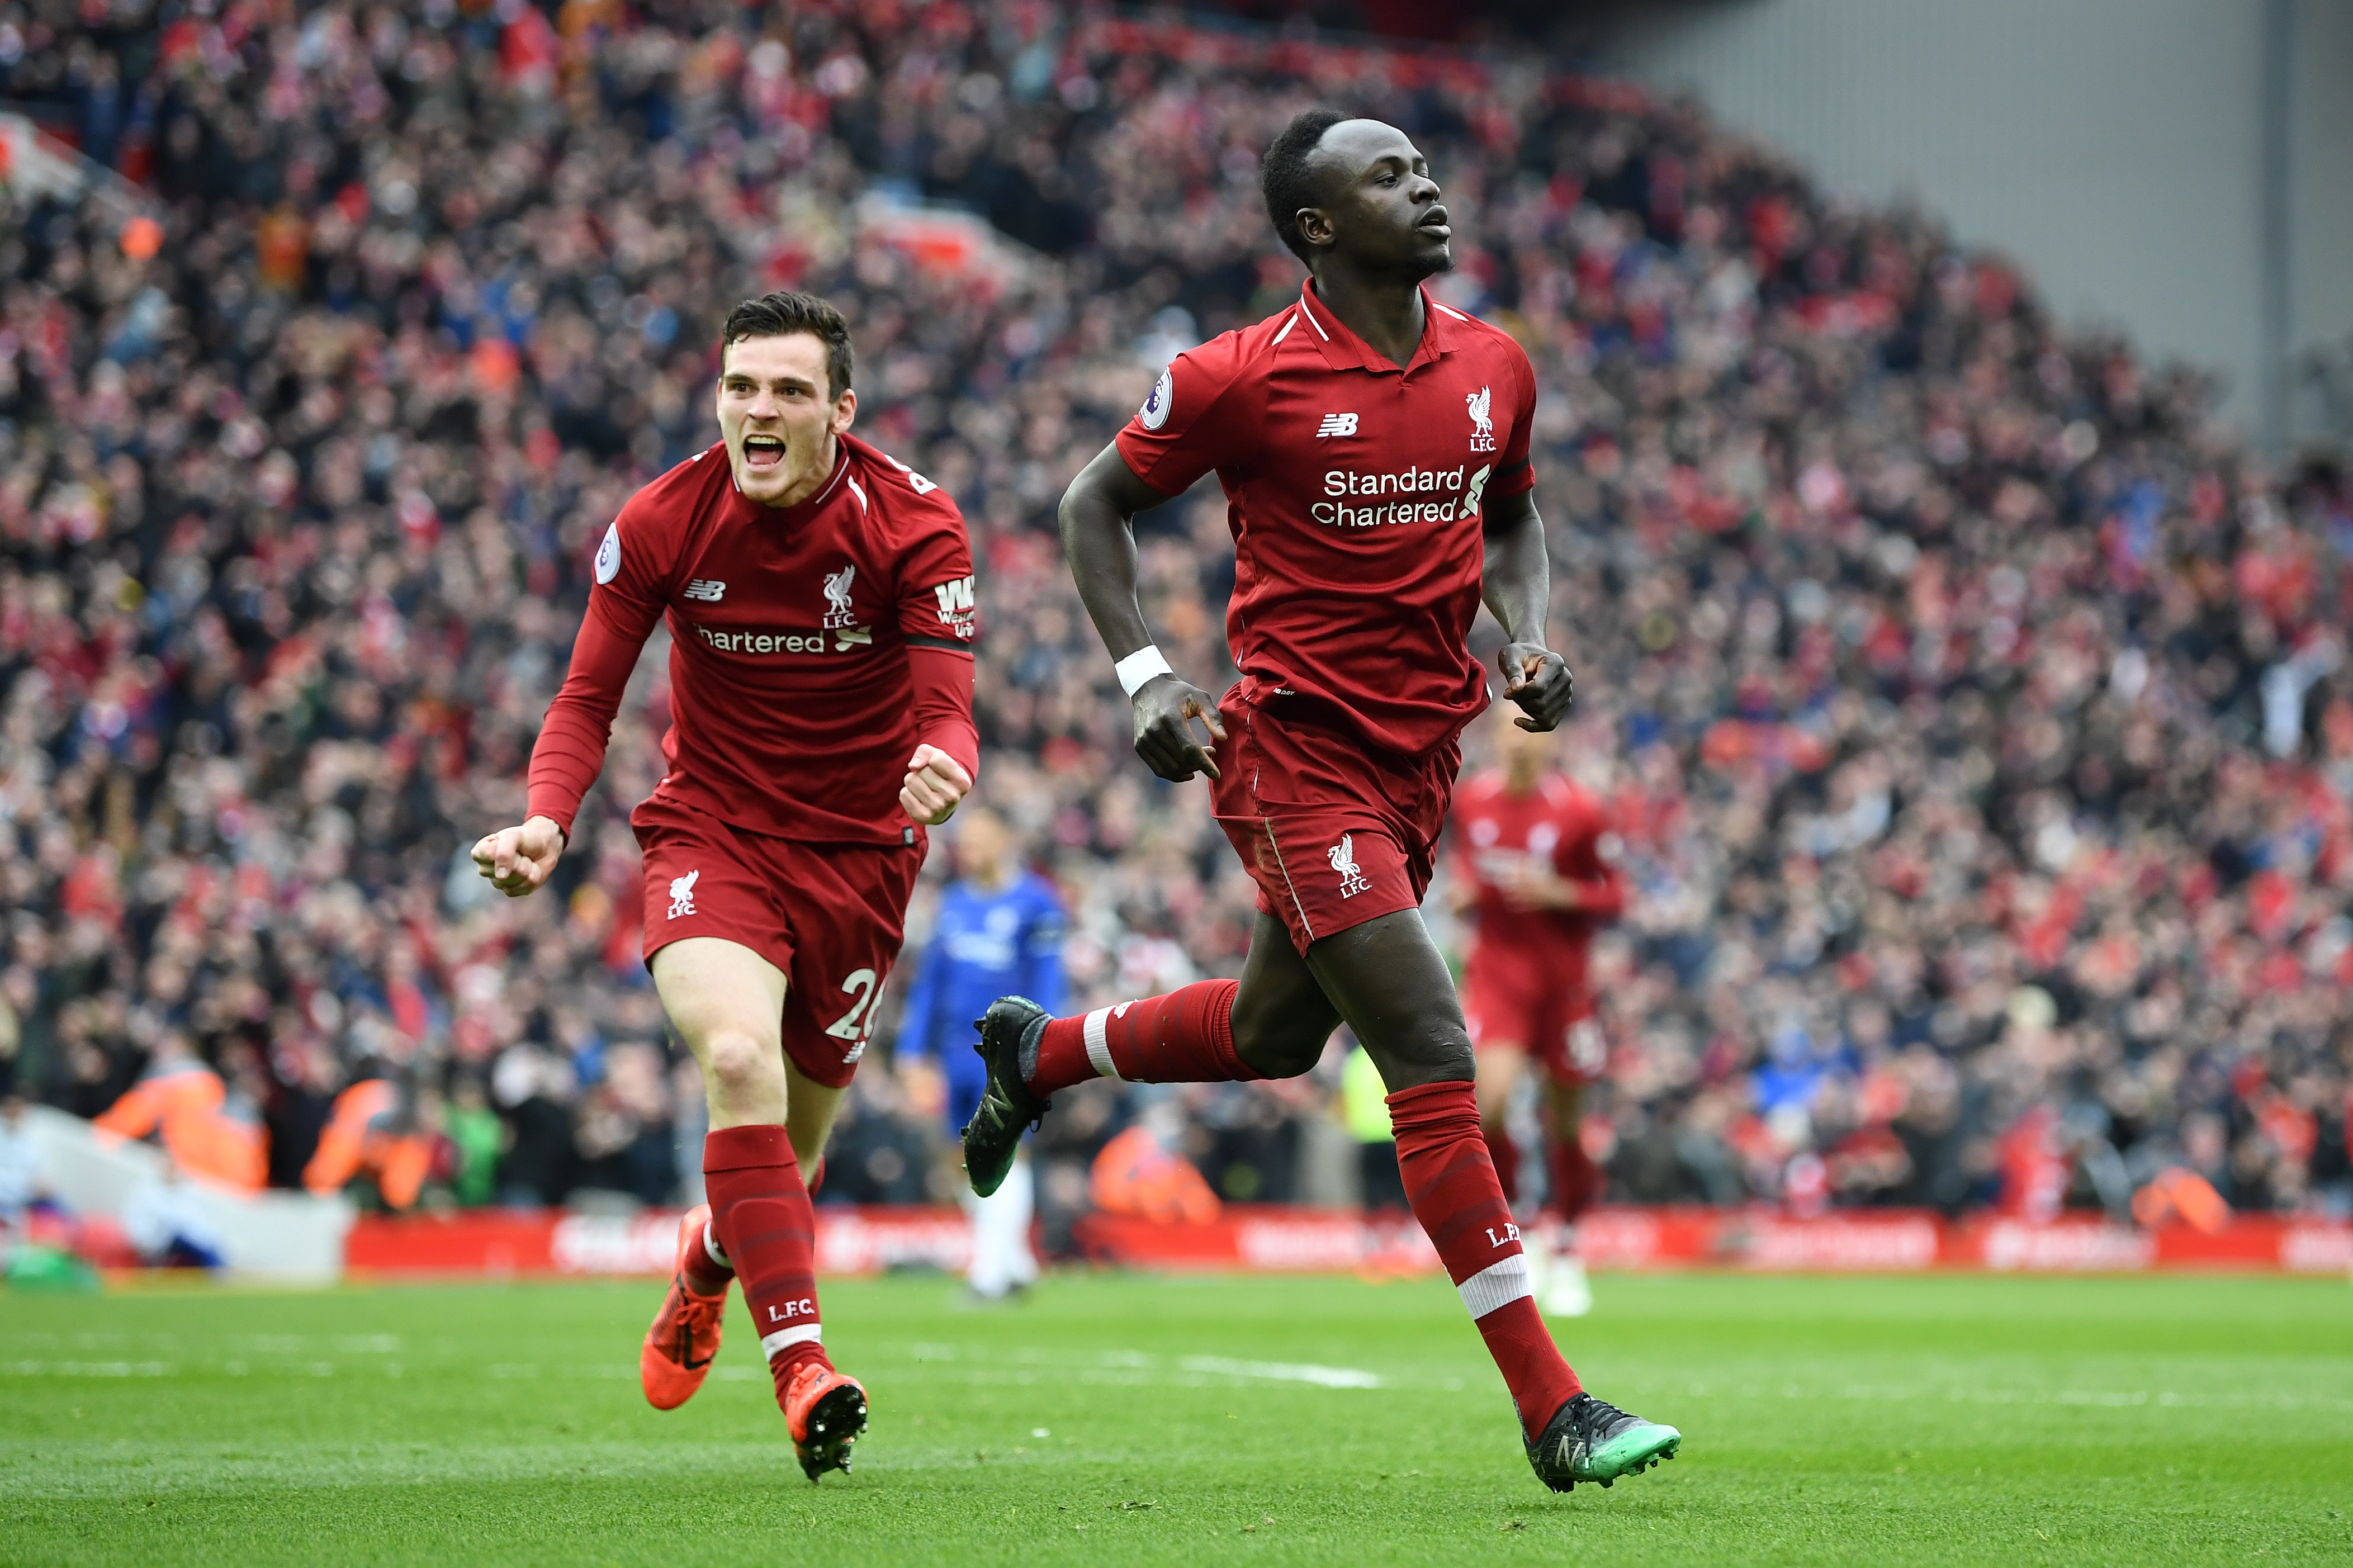 Sadio Mane has been in sensational form for Liverpool but will he be wearing their new shirt?